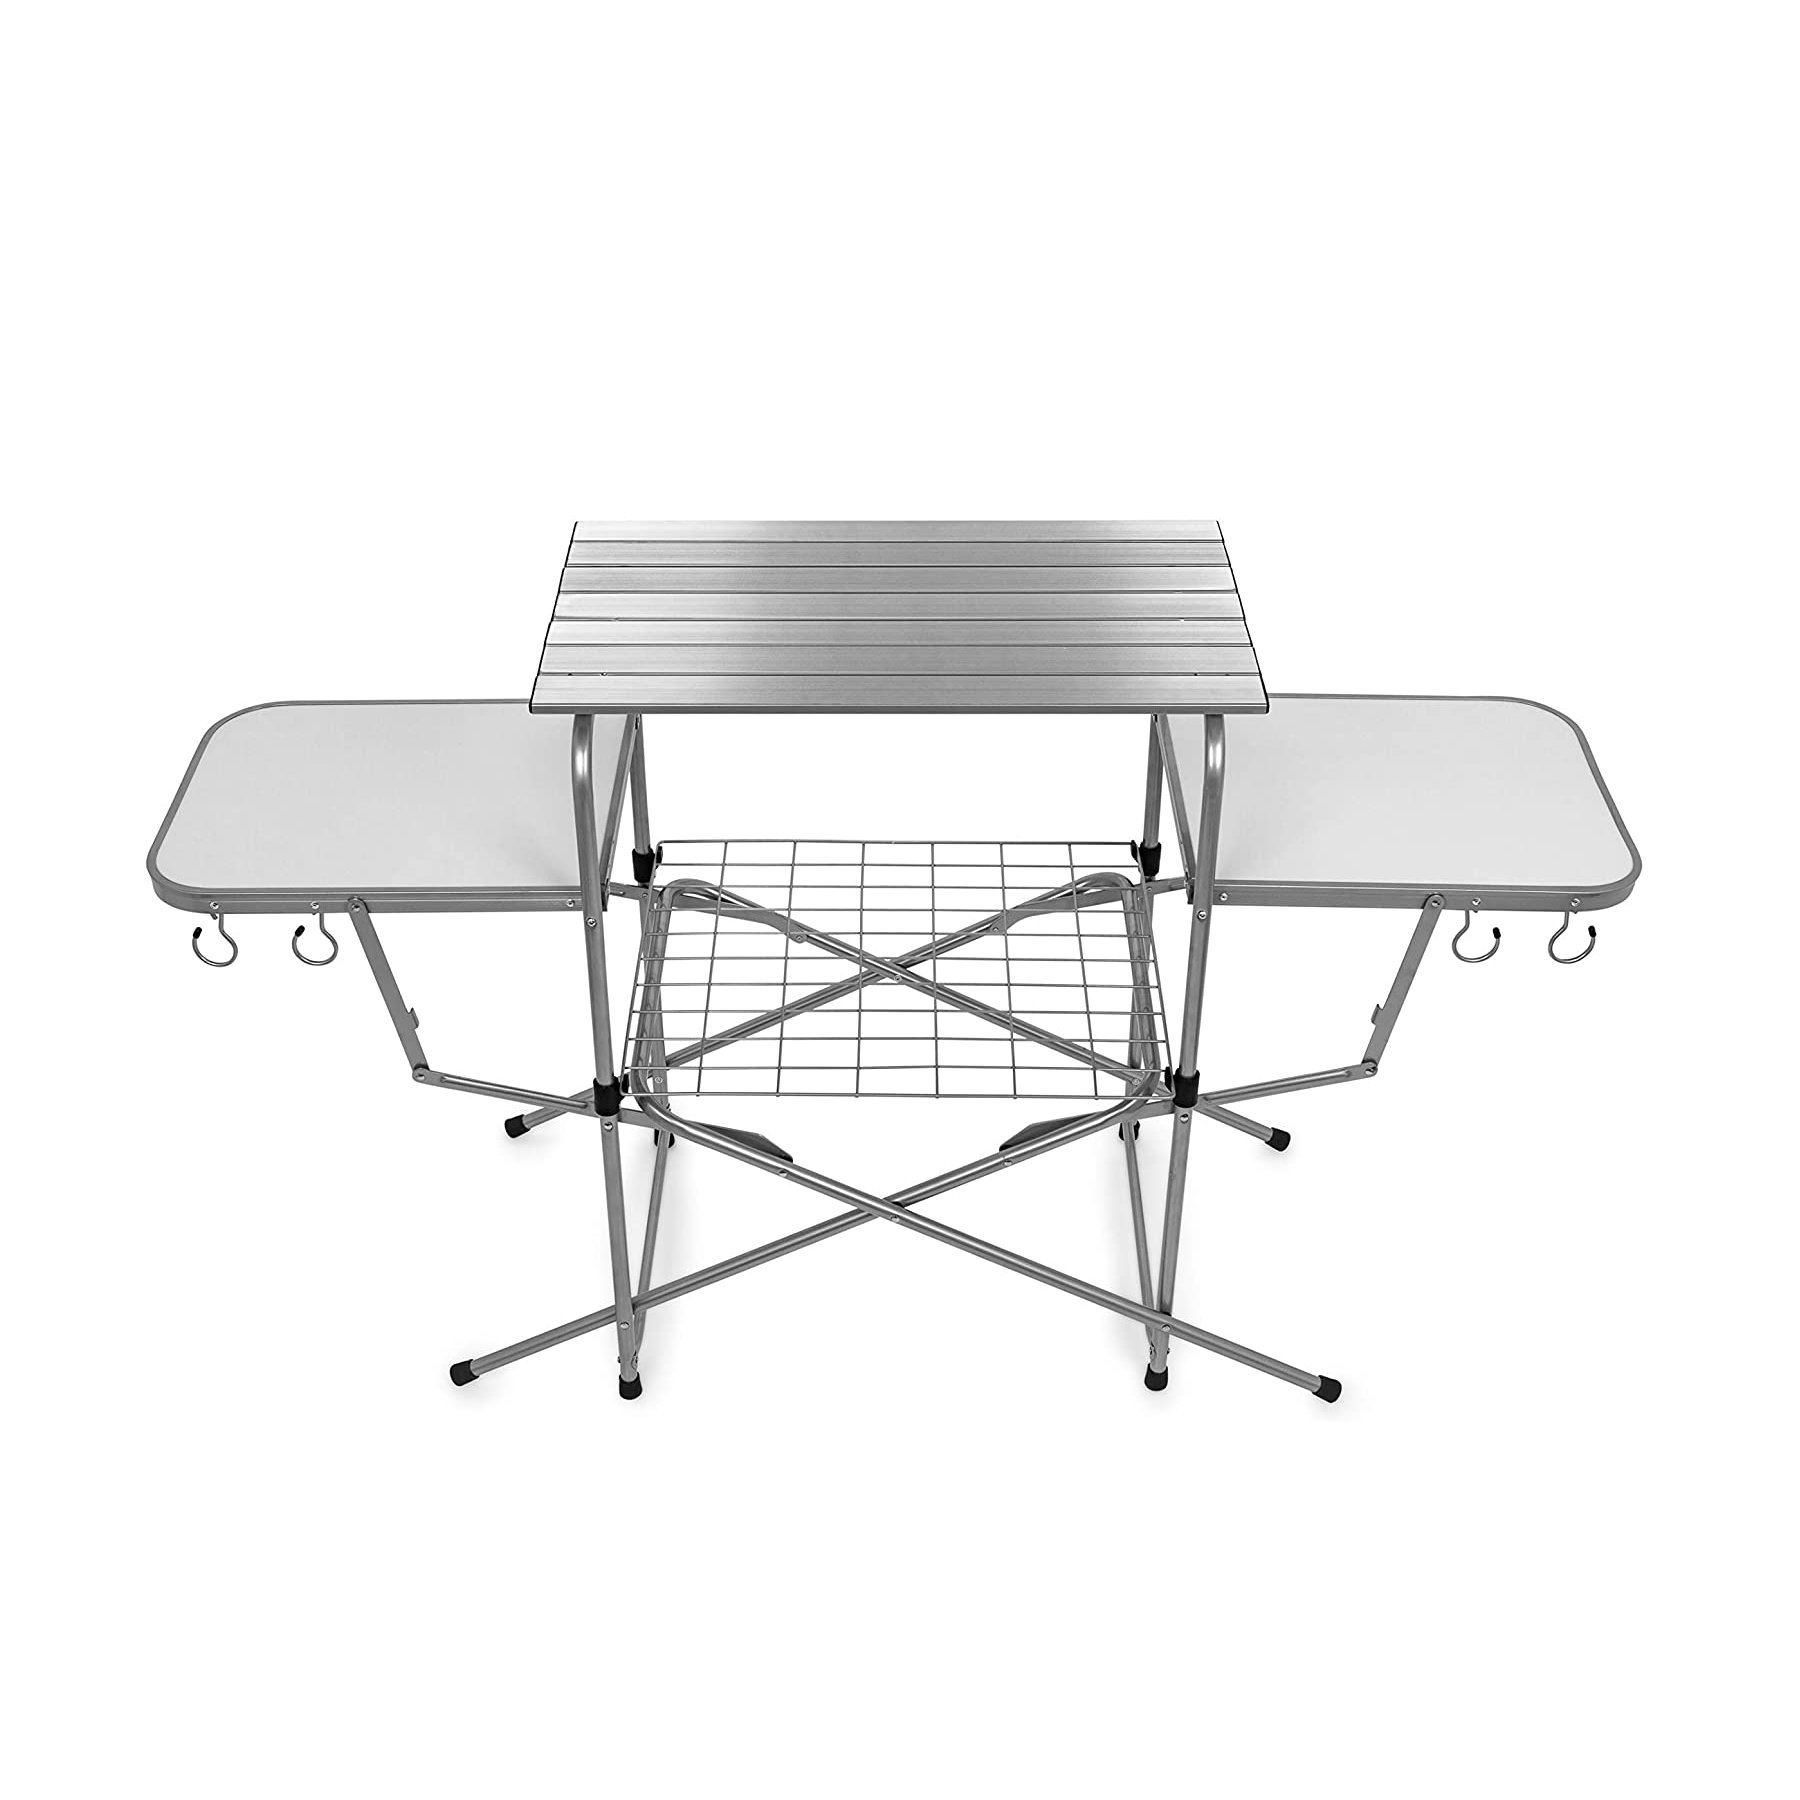 https://www.9020.store/9020store-deluxe-folding-grill-table-great-for-picnics-tailgating-camping-rving-and-backyards-quick-set-up-and-folds-down-to-only-6-inches-tall-for-convenient-storage-2